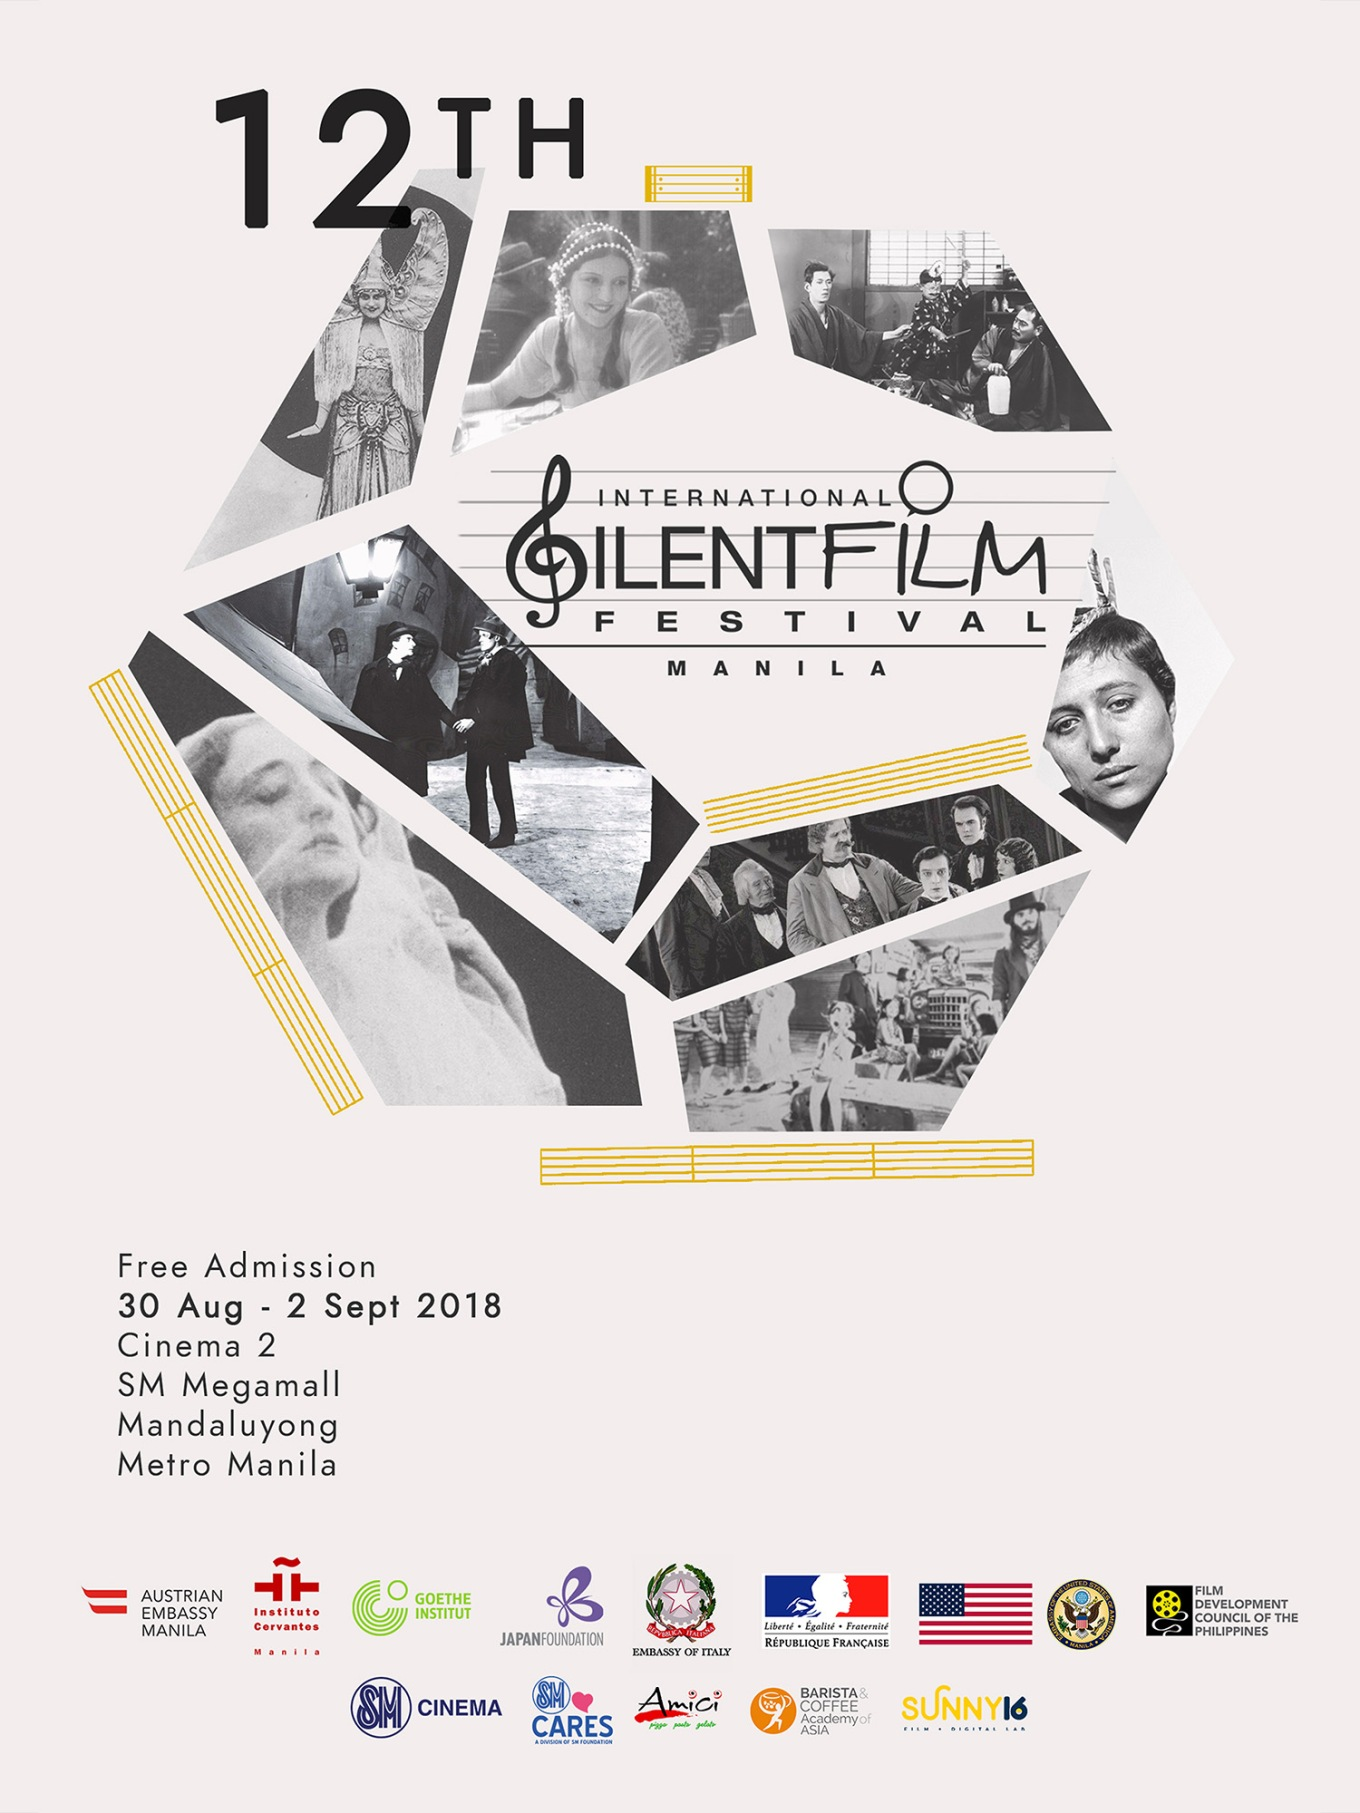 ISFF '18 - Silent Film Festival 2018